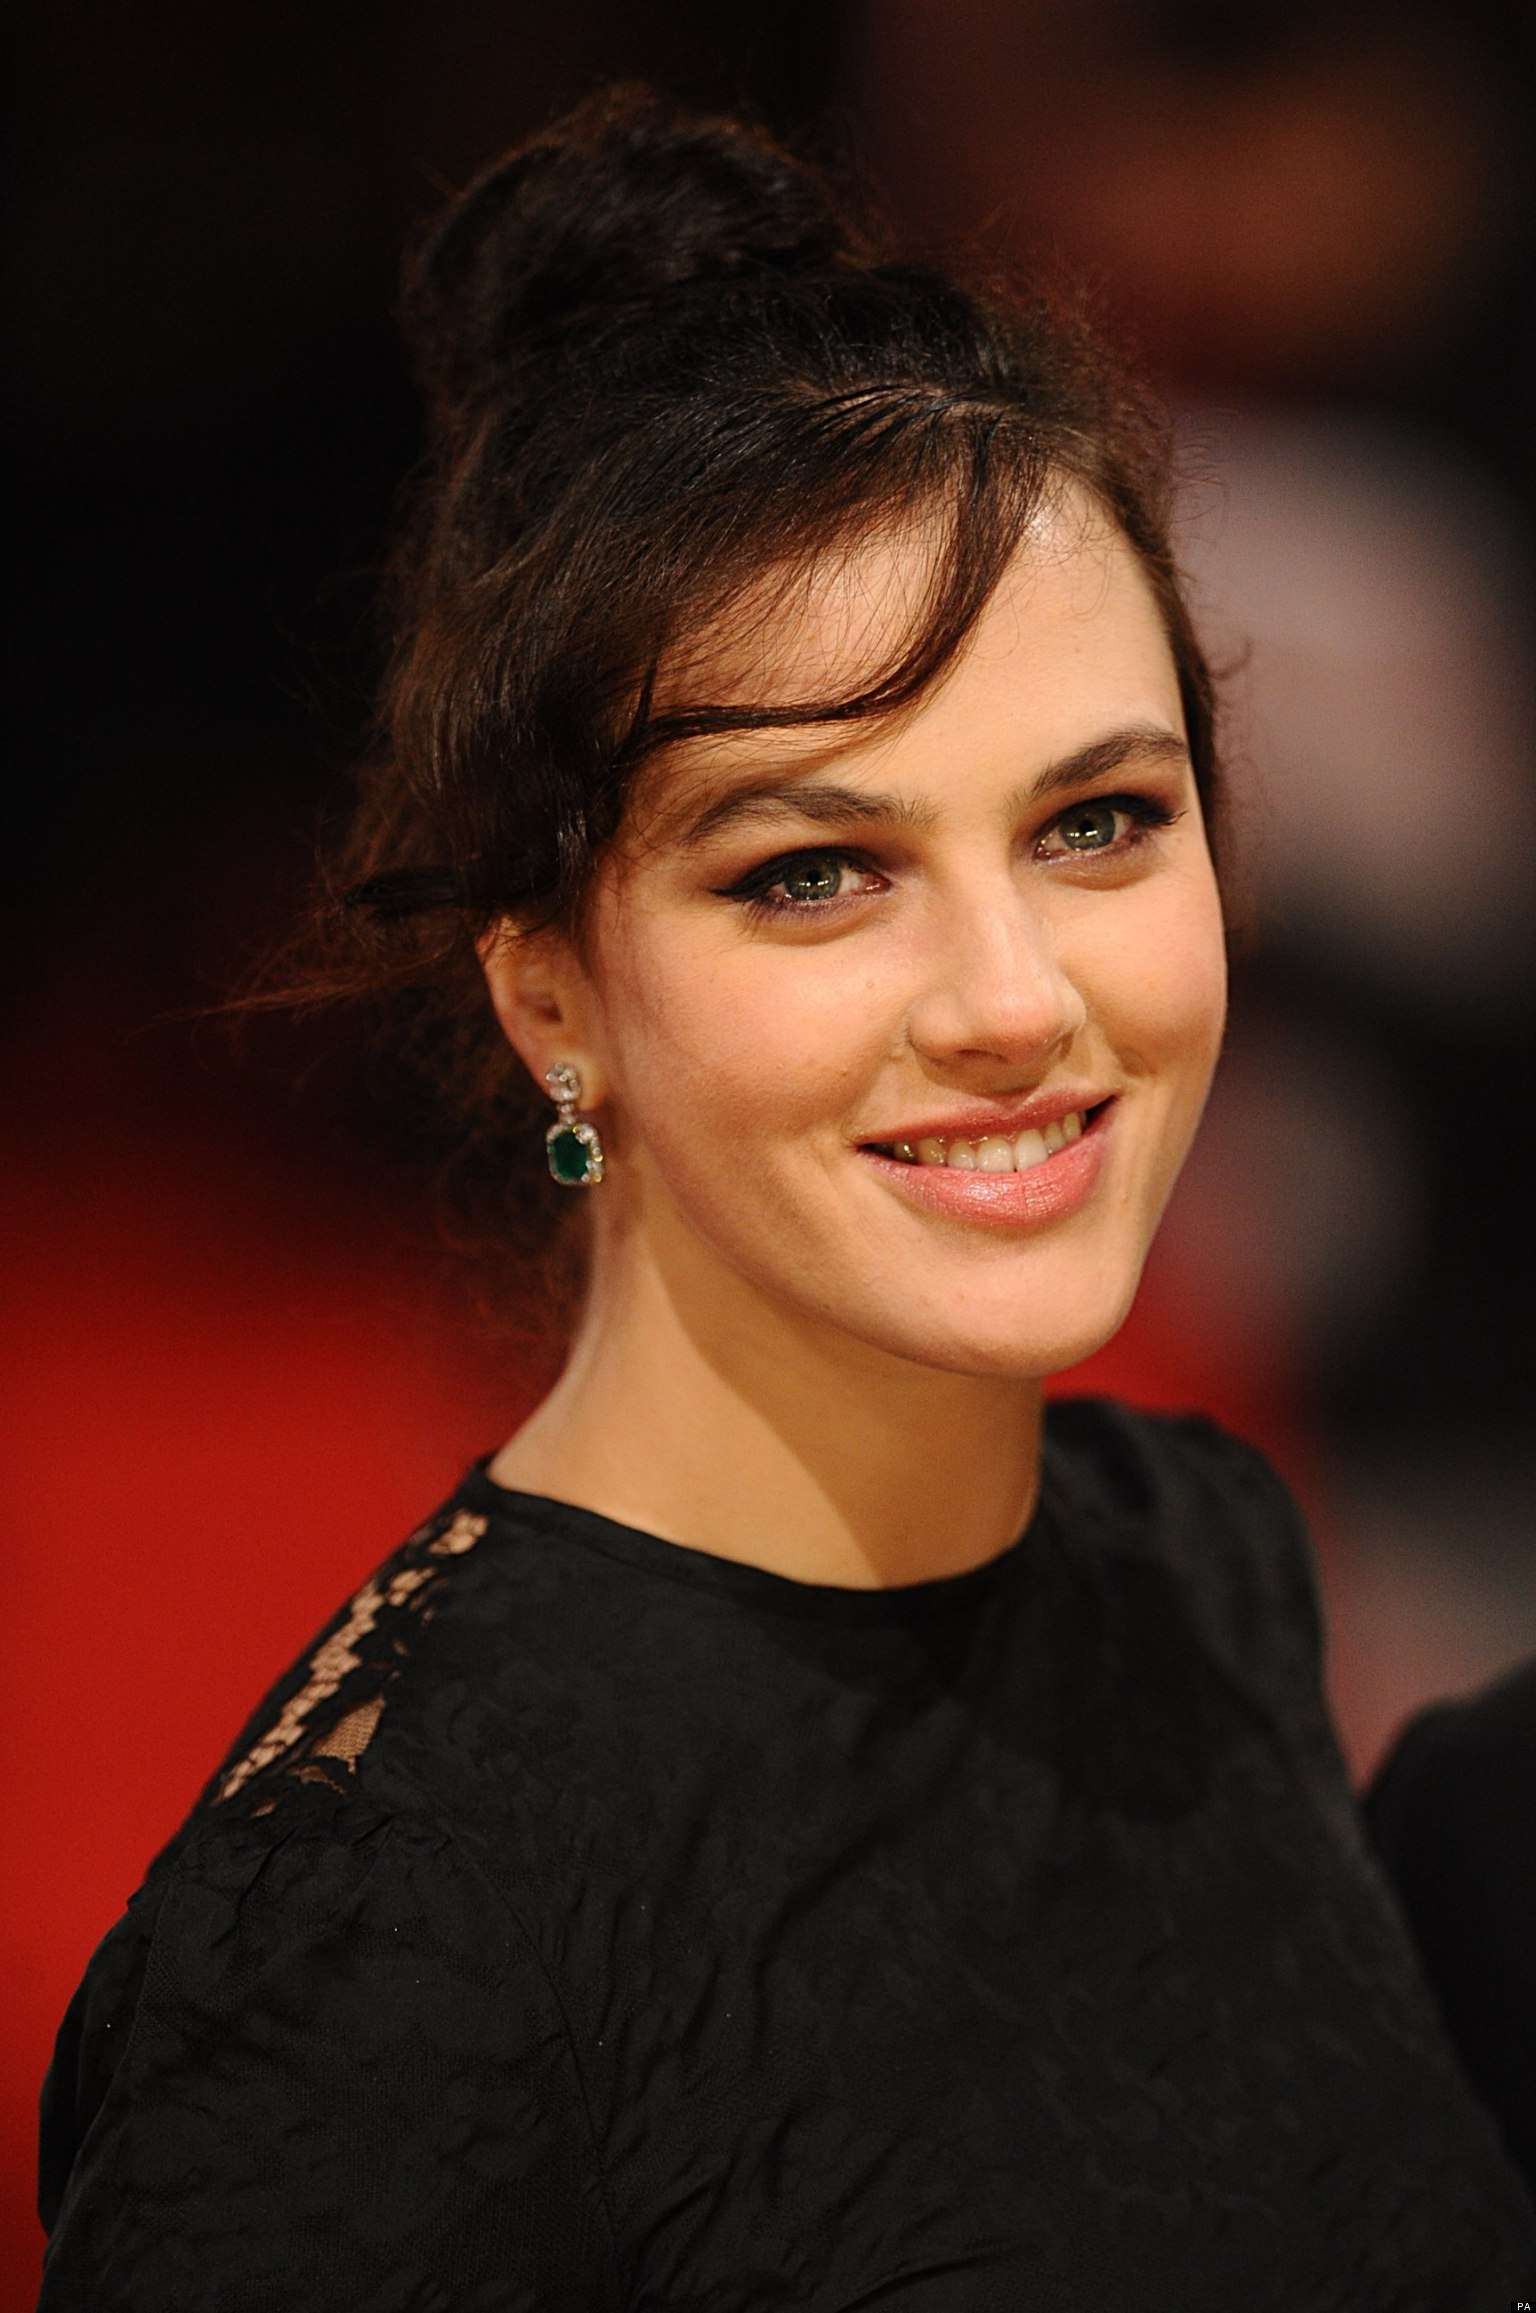 Jessica brown findlay labyrinth part 1 - 3 part 2